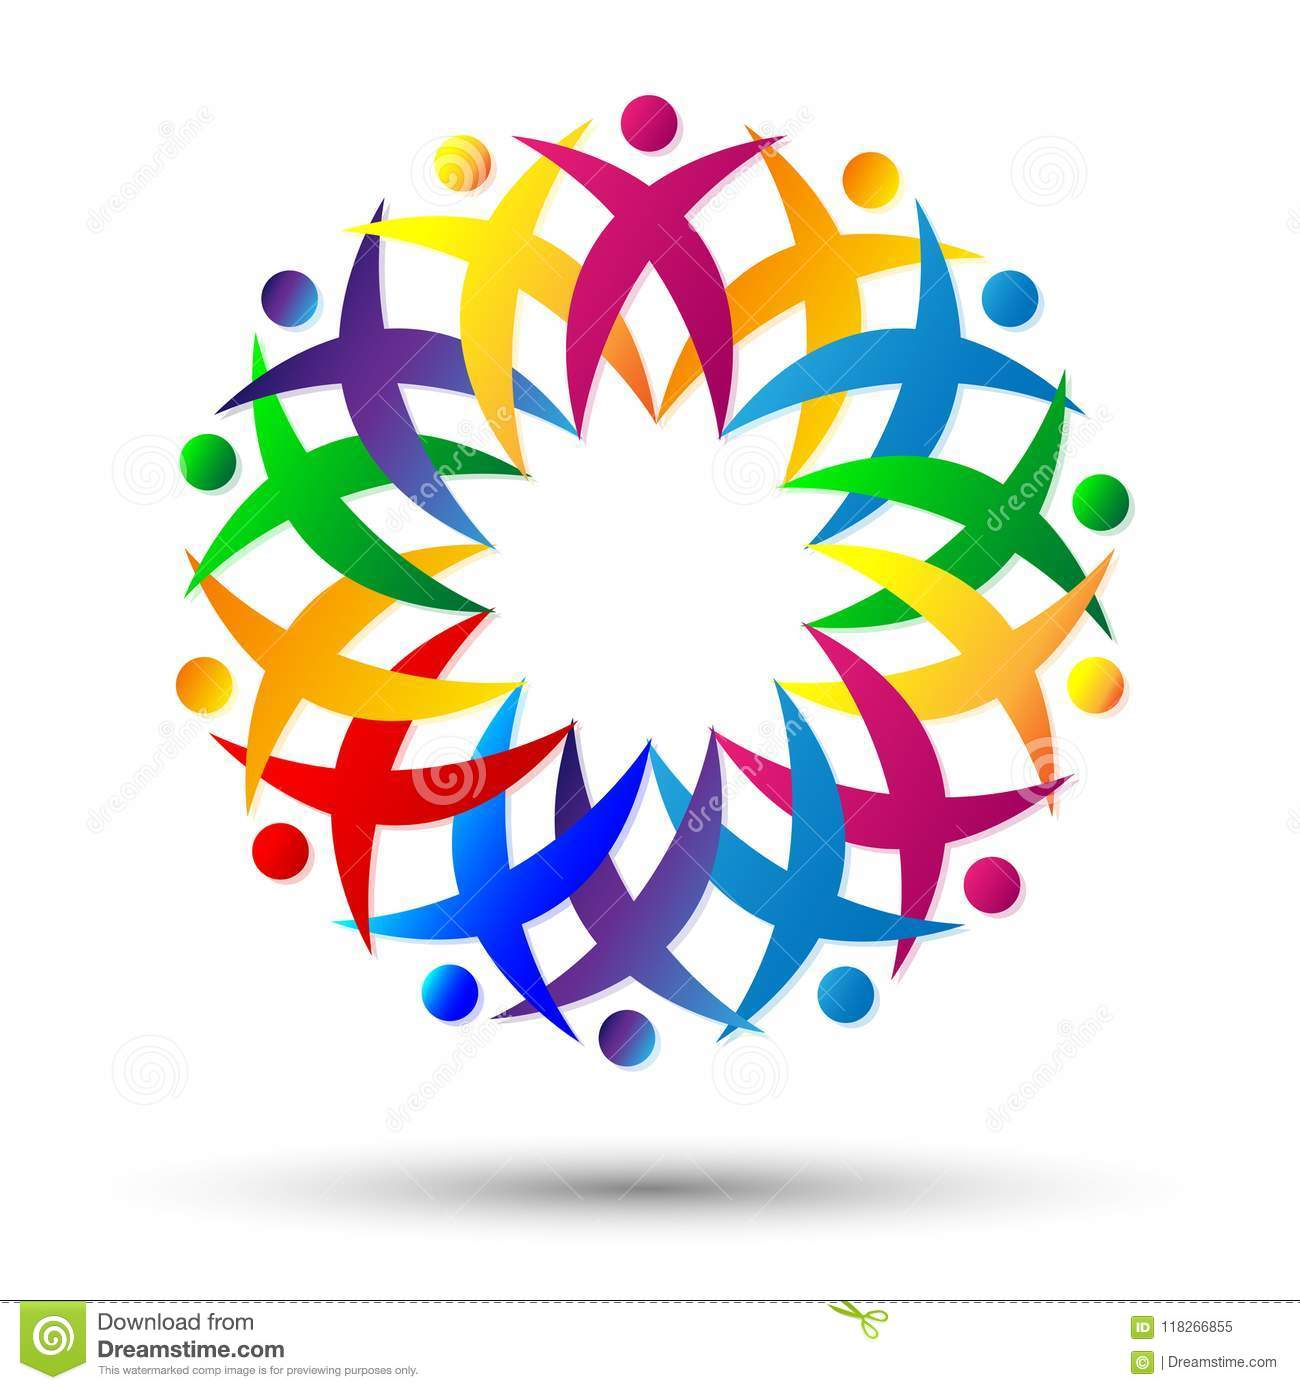 Crowd of People team work union, Cheering Up in Circle Logo on white background